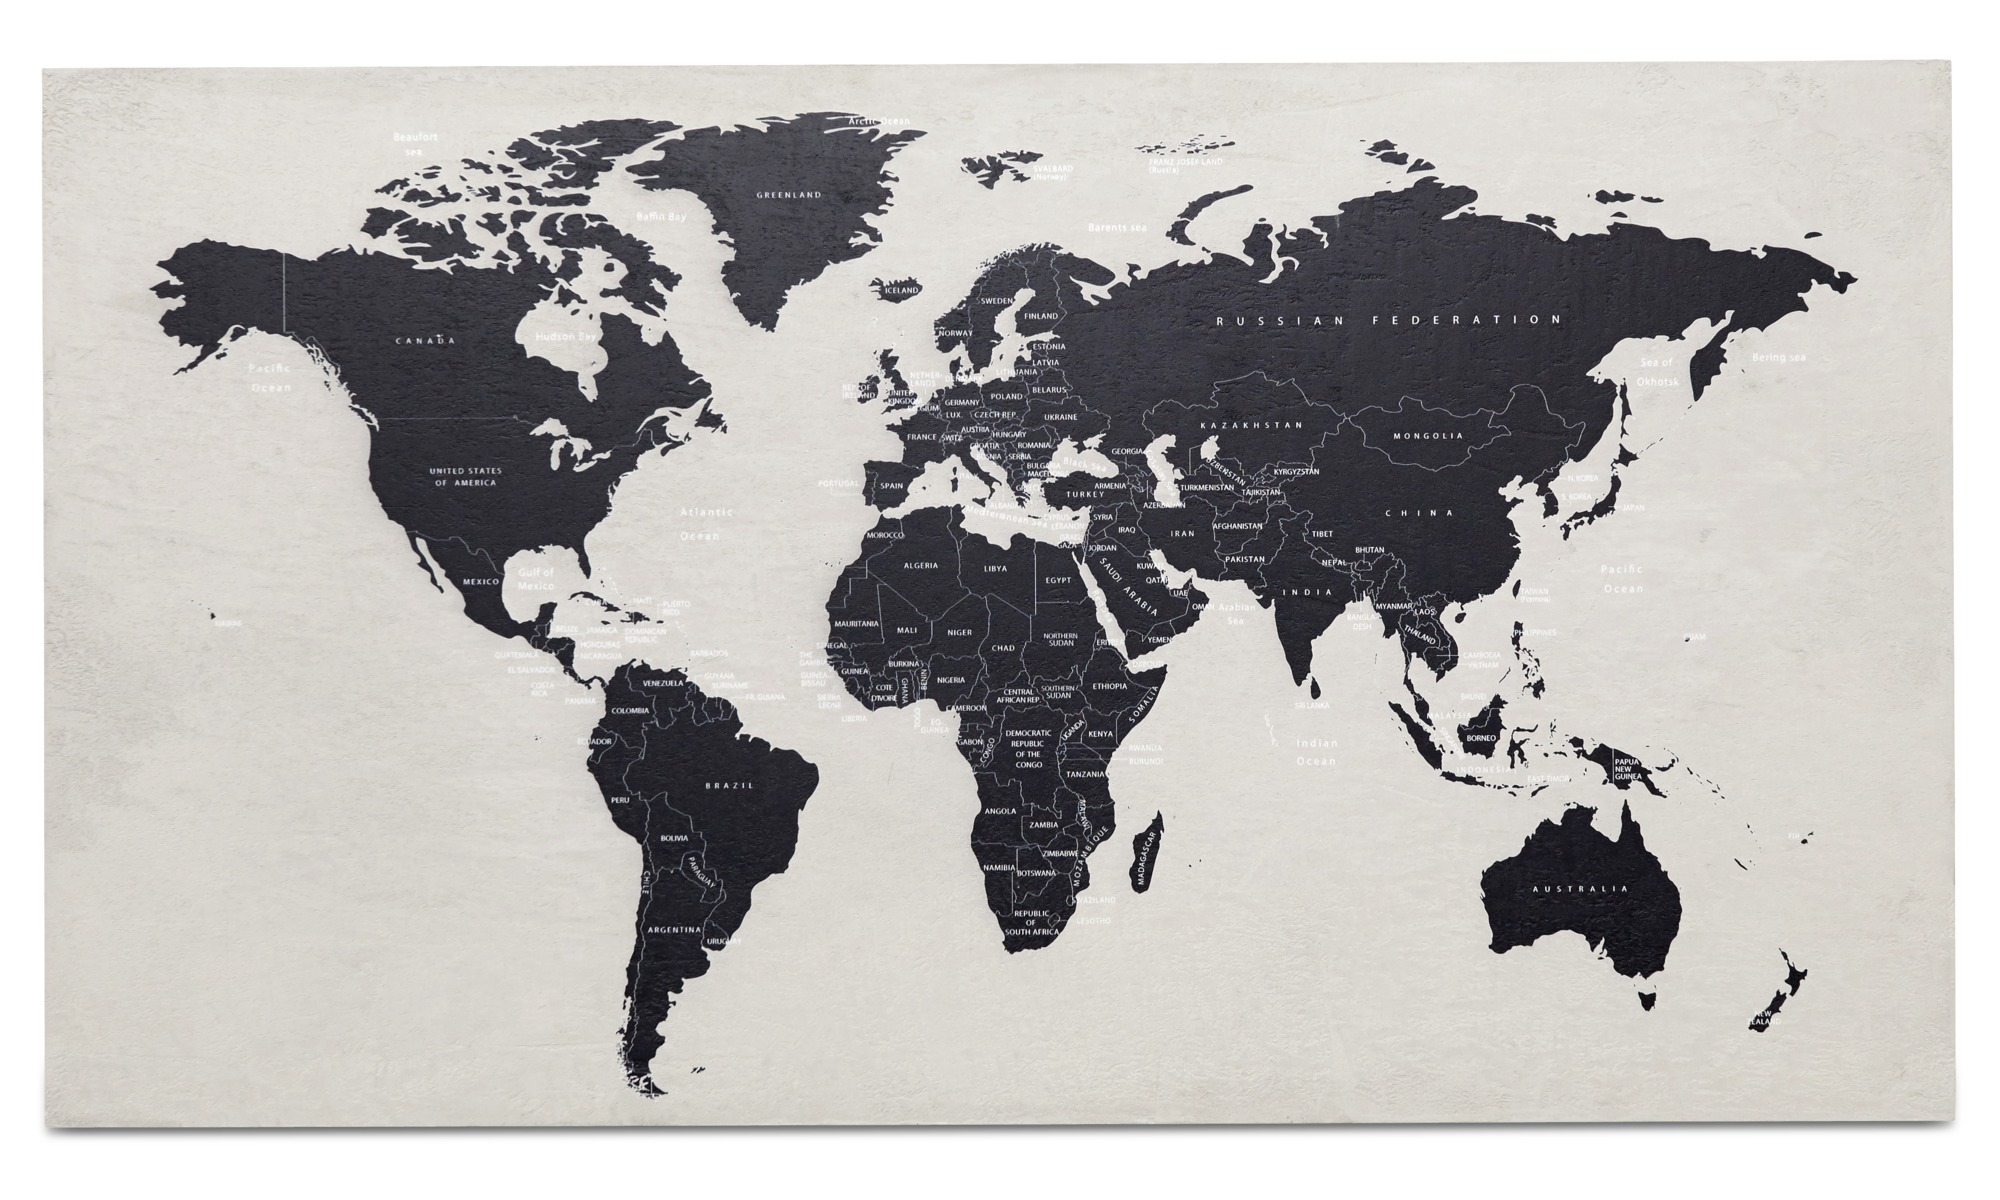 Gallery world map concrete art boconcept gallery world map concrete art grey concrete gumiabroncs